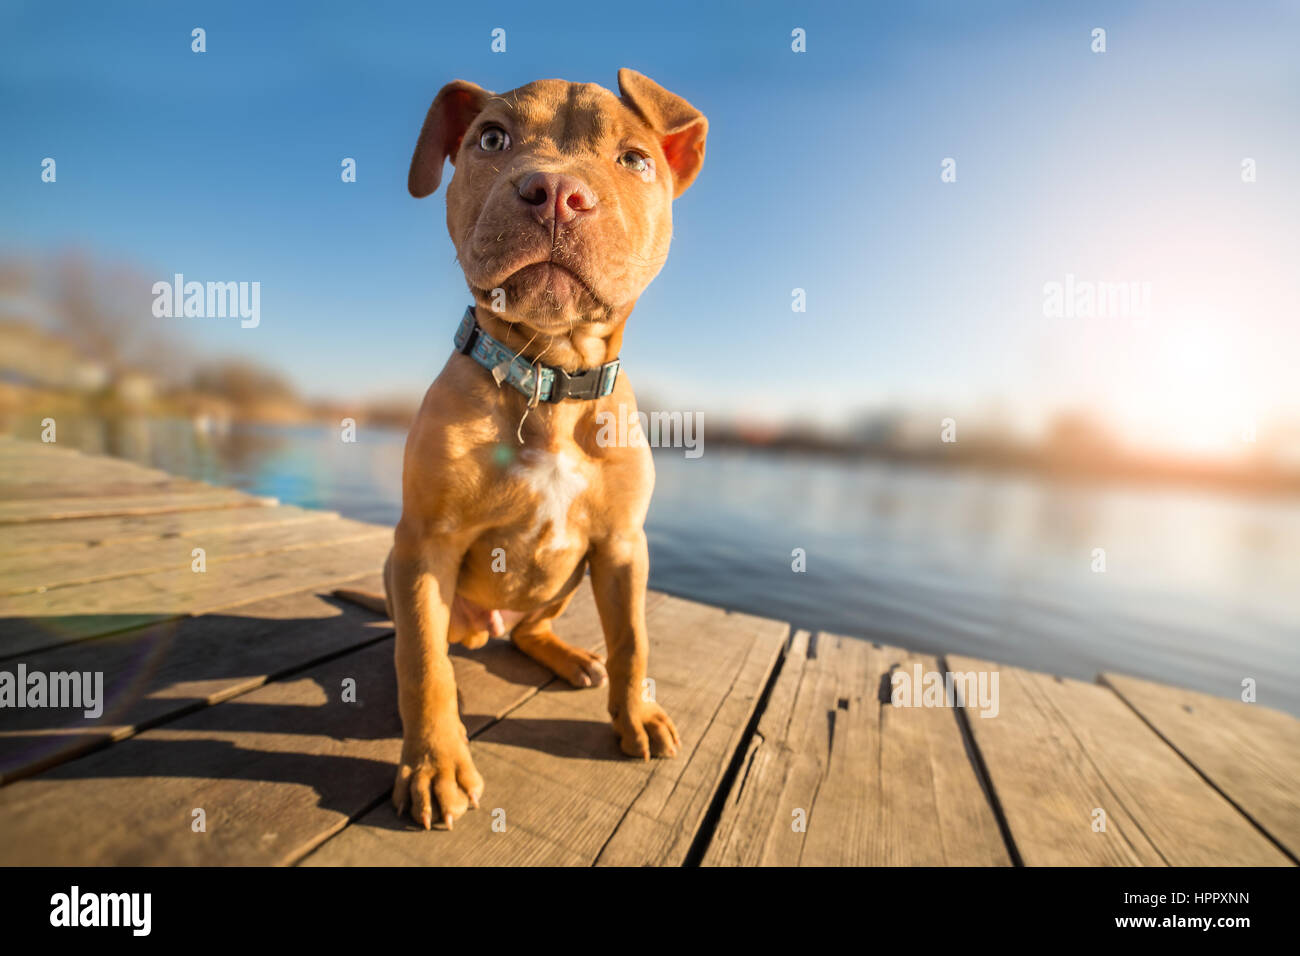 Yellow terrier puppy on vacation - Stock Image